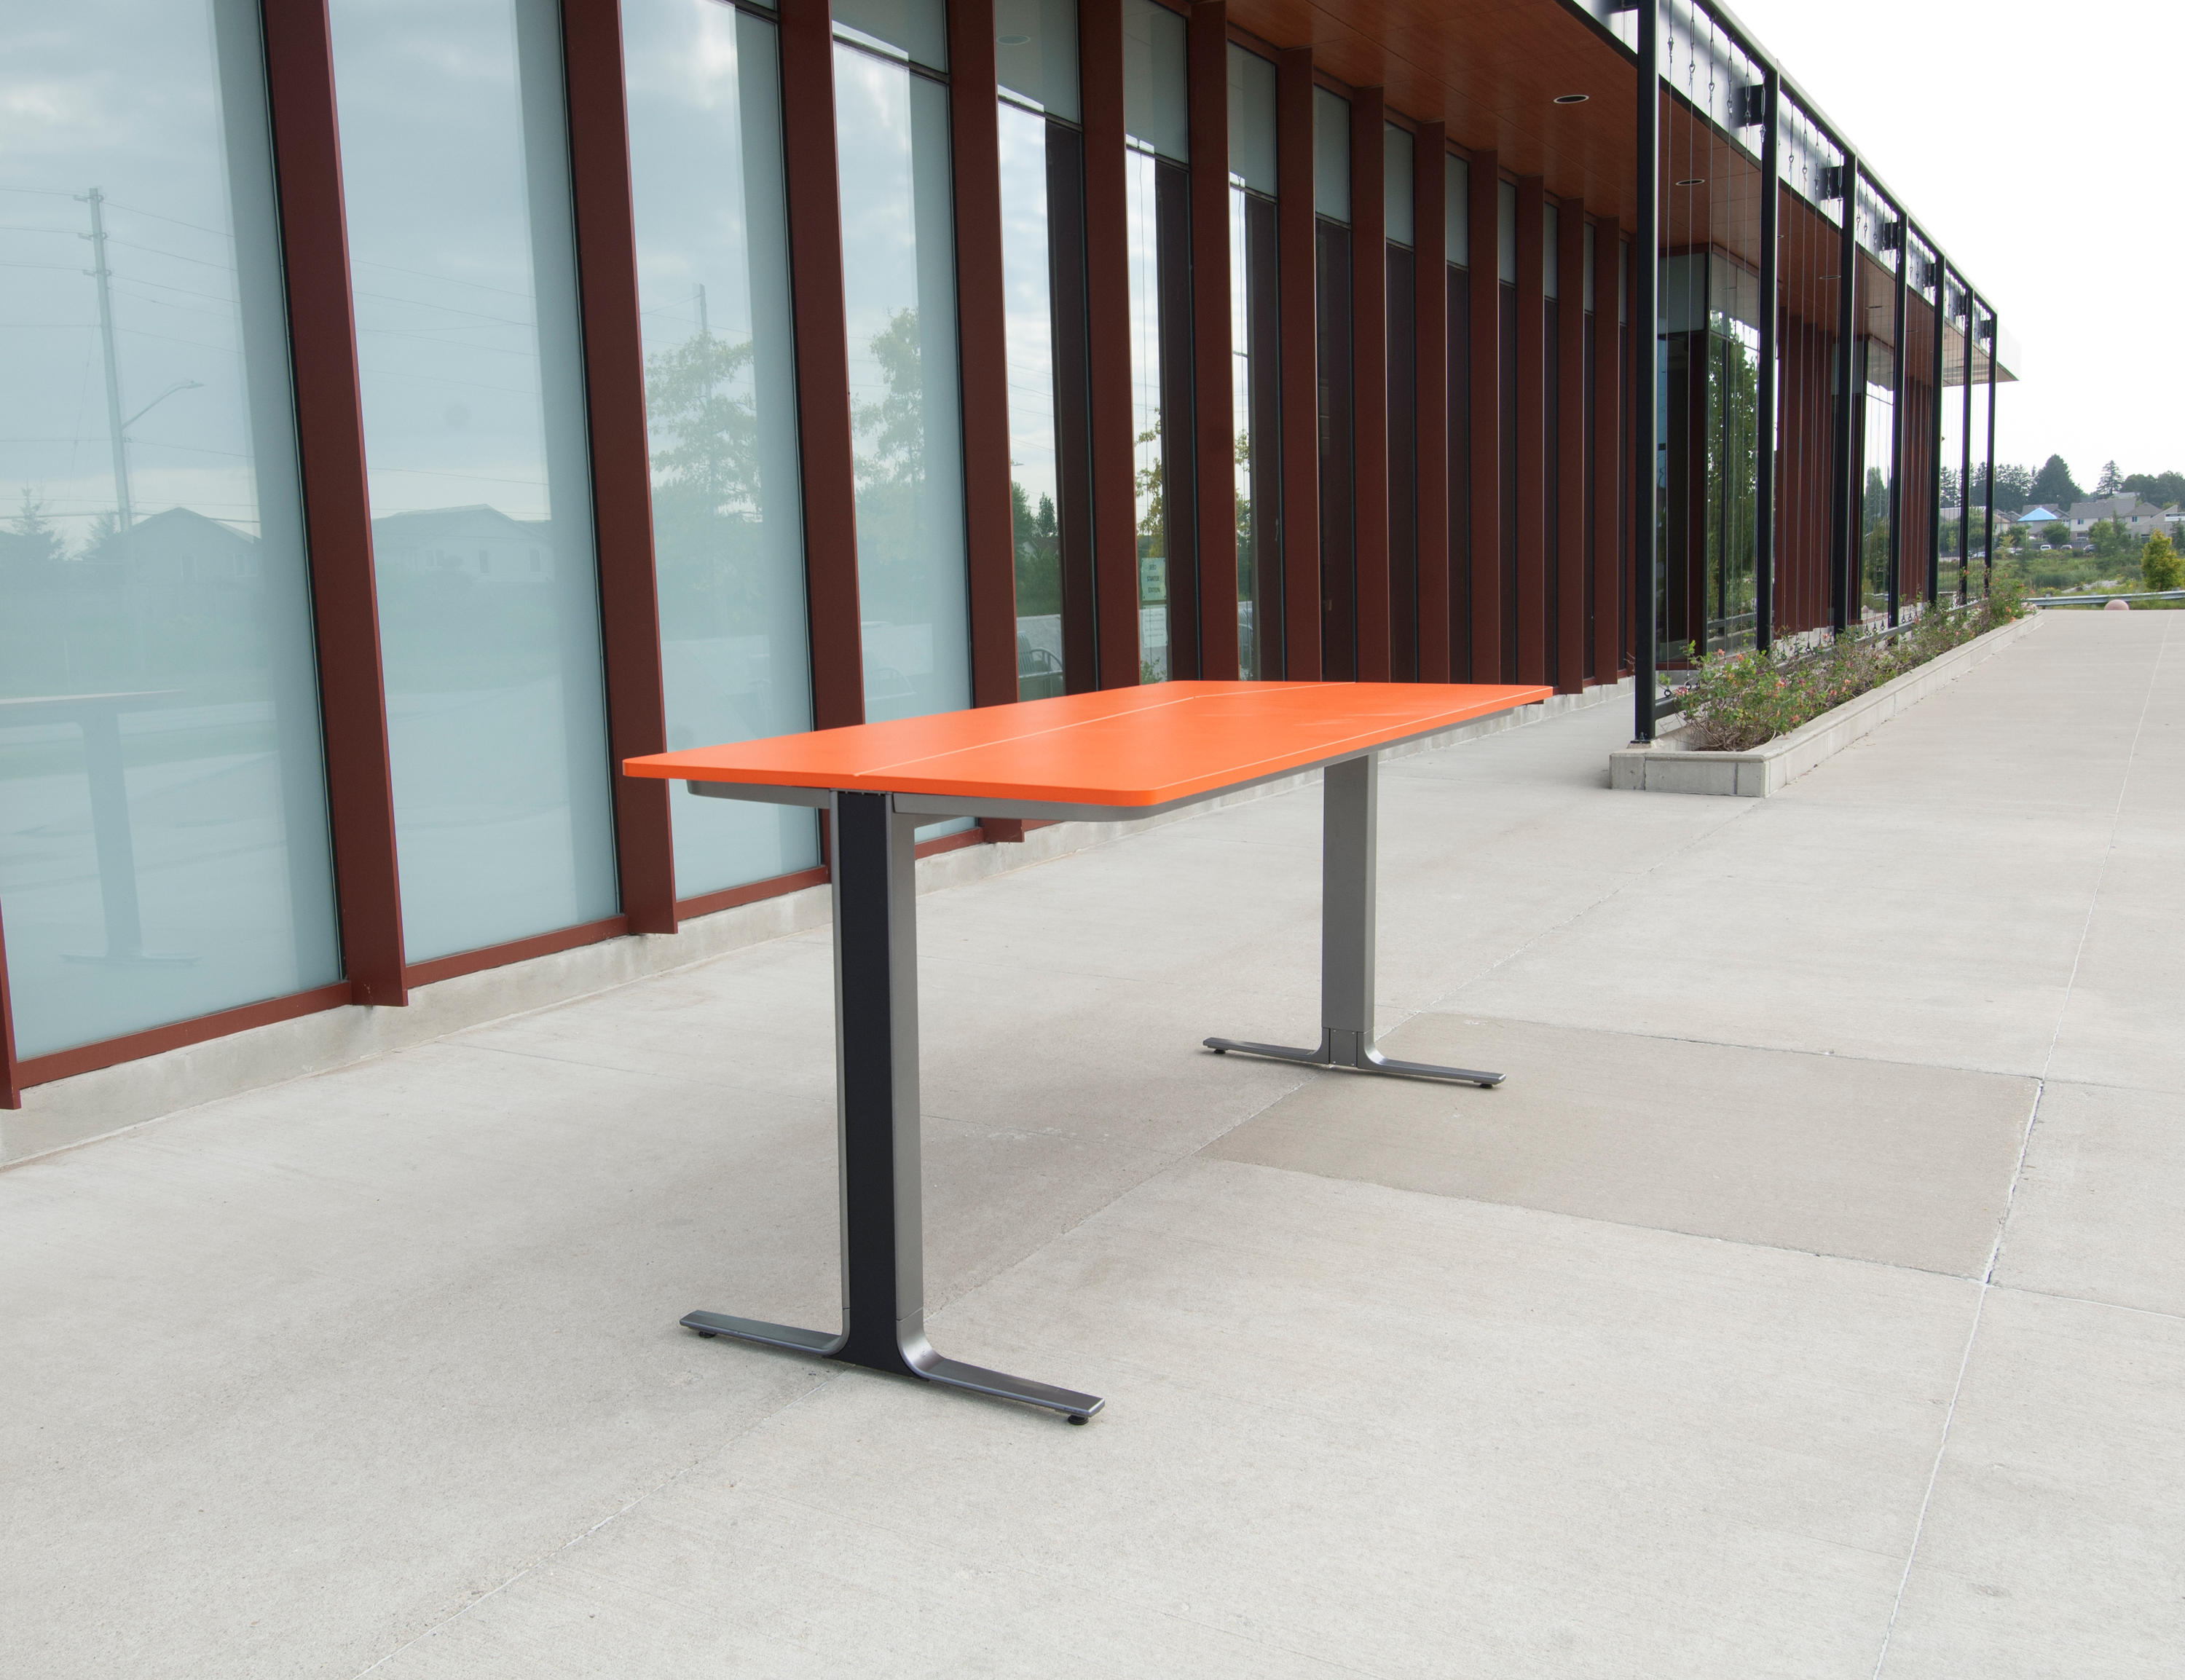 Picture of: Actb2100 Bh 8 Por P1 Fs Bar Height Table Architonic